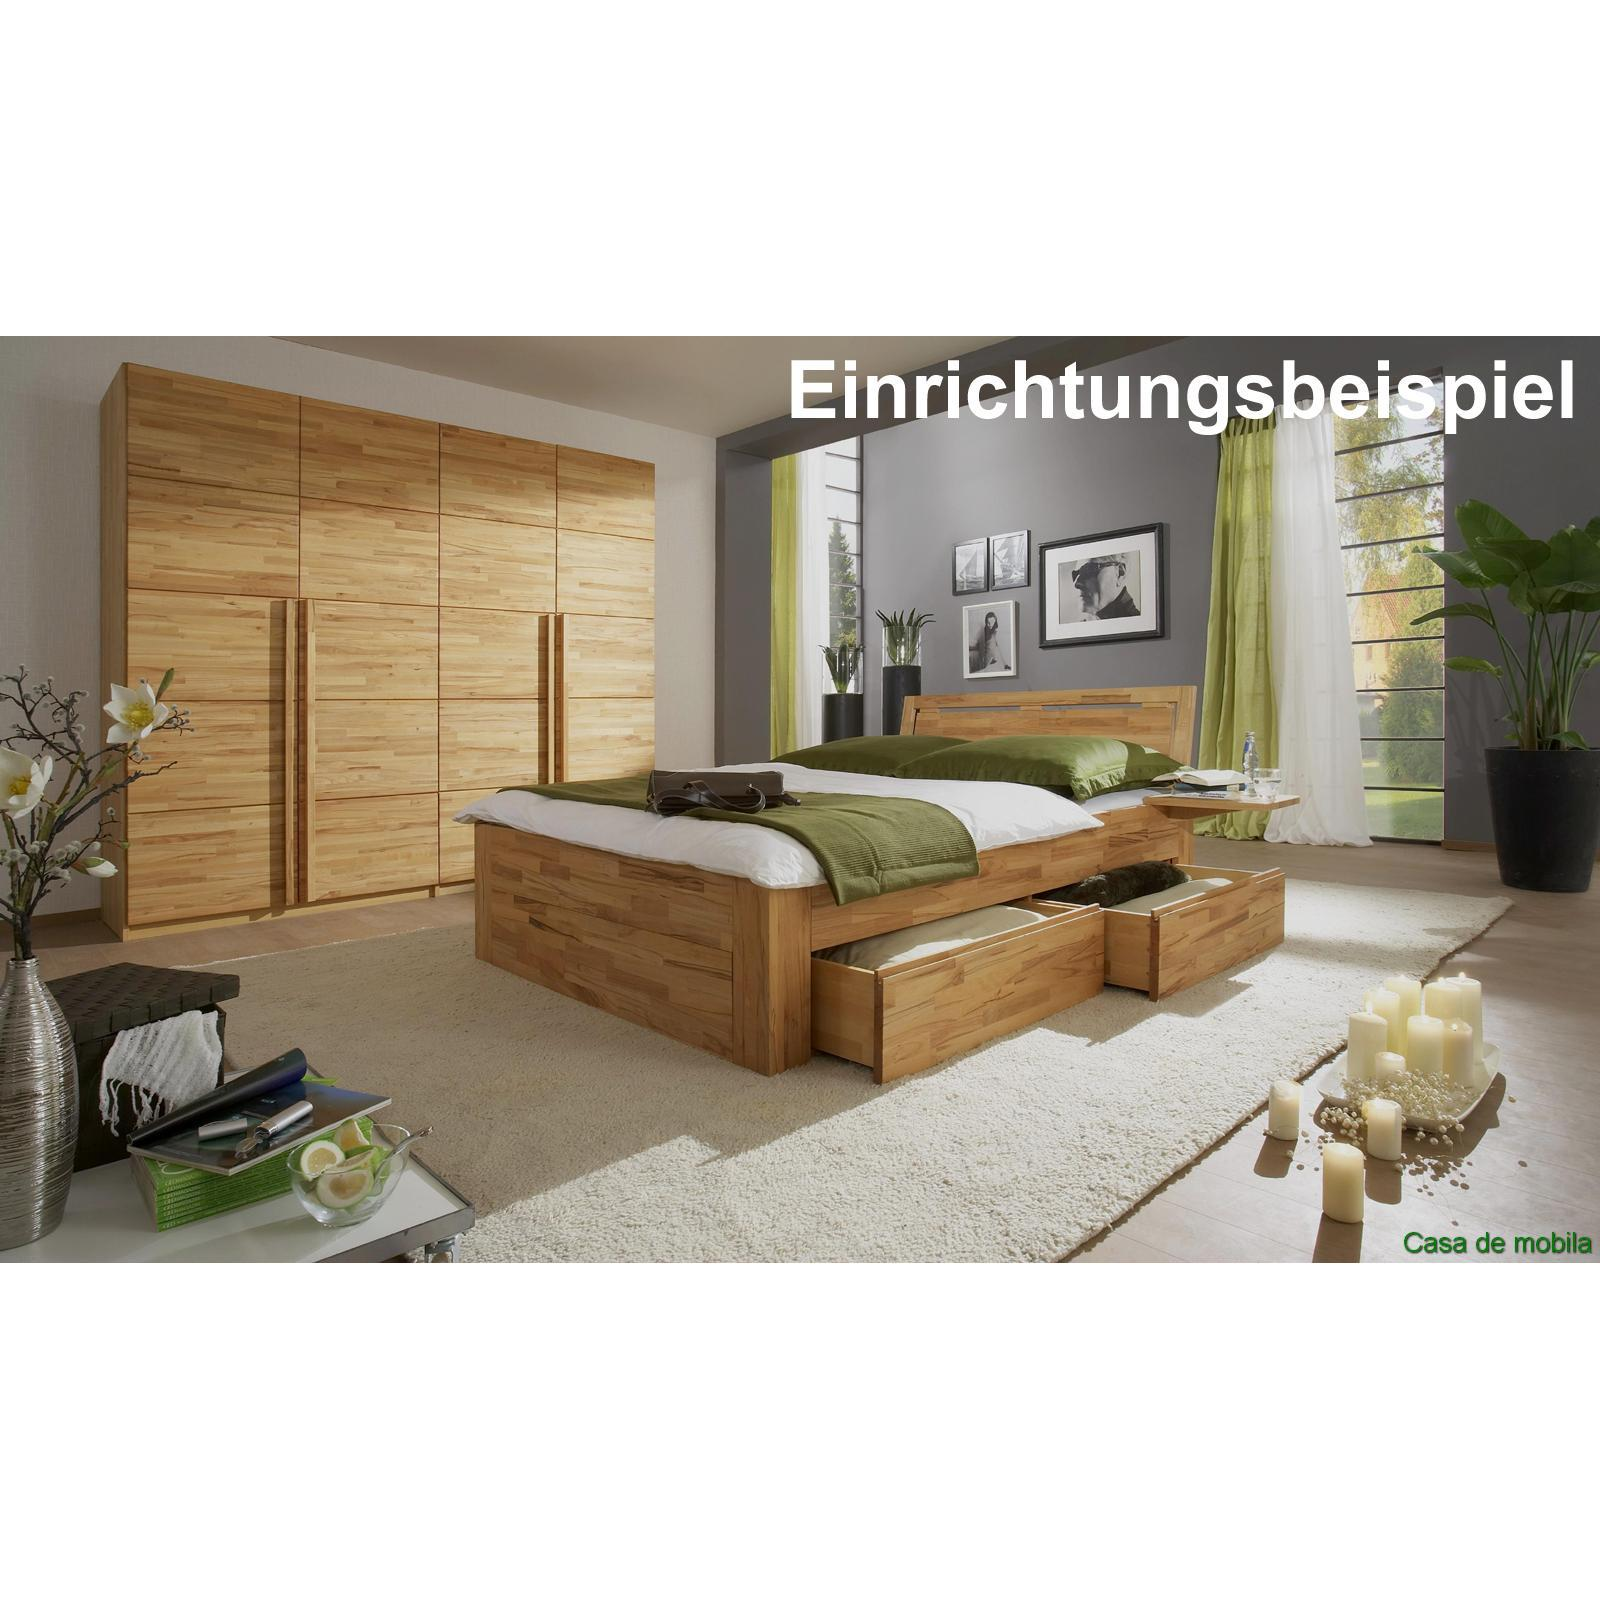 massivholz kleiderschrank eiche massiv natur ge lt front6 6 t rig wildeiche. Black Bedroom Furniture Sets. Home Design Ideas